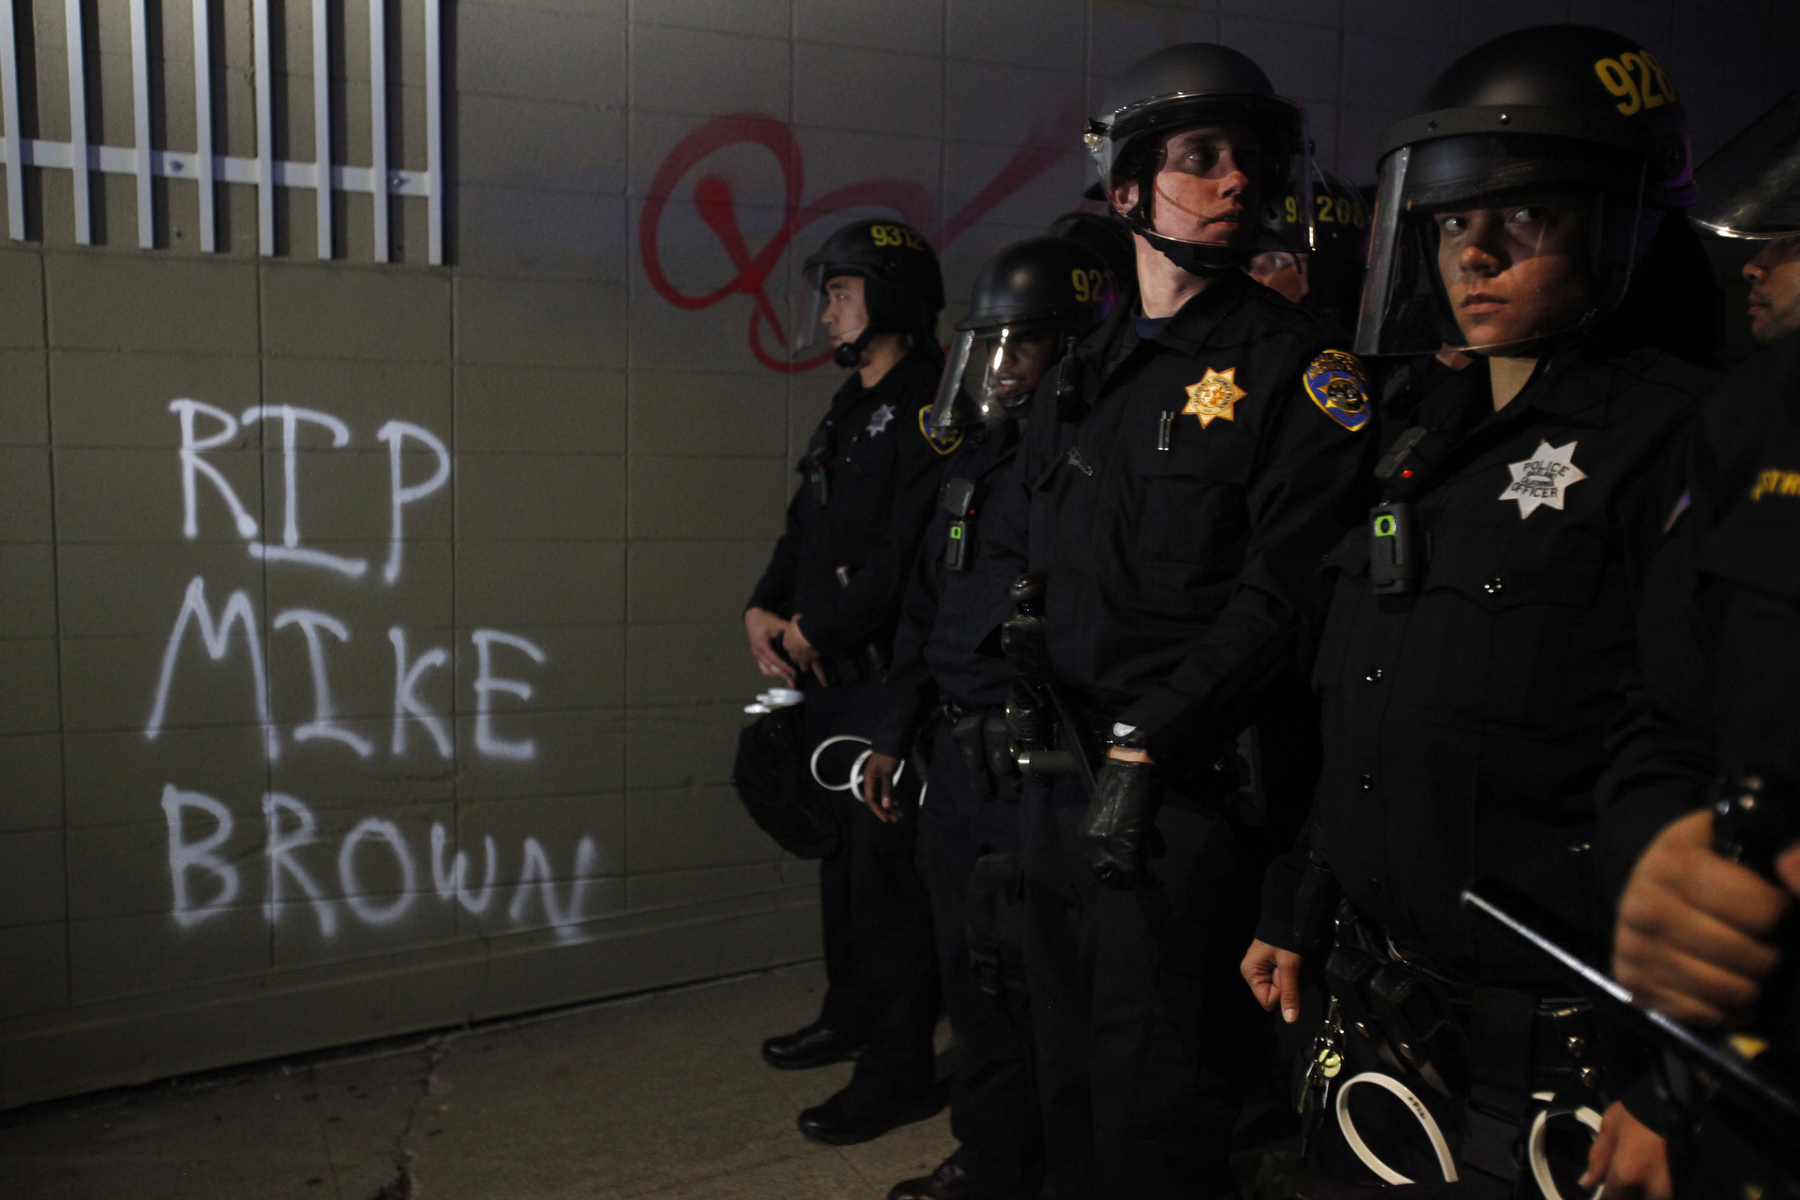 Police officers push people back from the 580 westbound ramp during a protest against the grand jury's decision not to indict the white police officer who fatally shot an unarmed black teenager months ago in Ferguson Nov. 24, 2014 in Oakland, Calif.